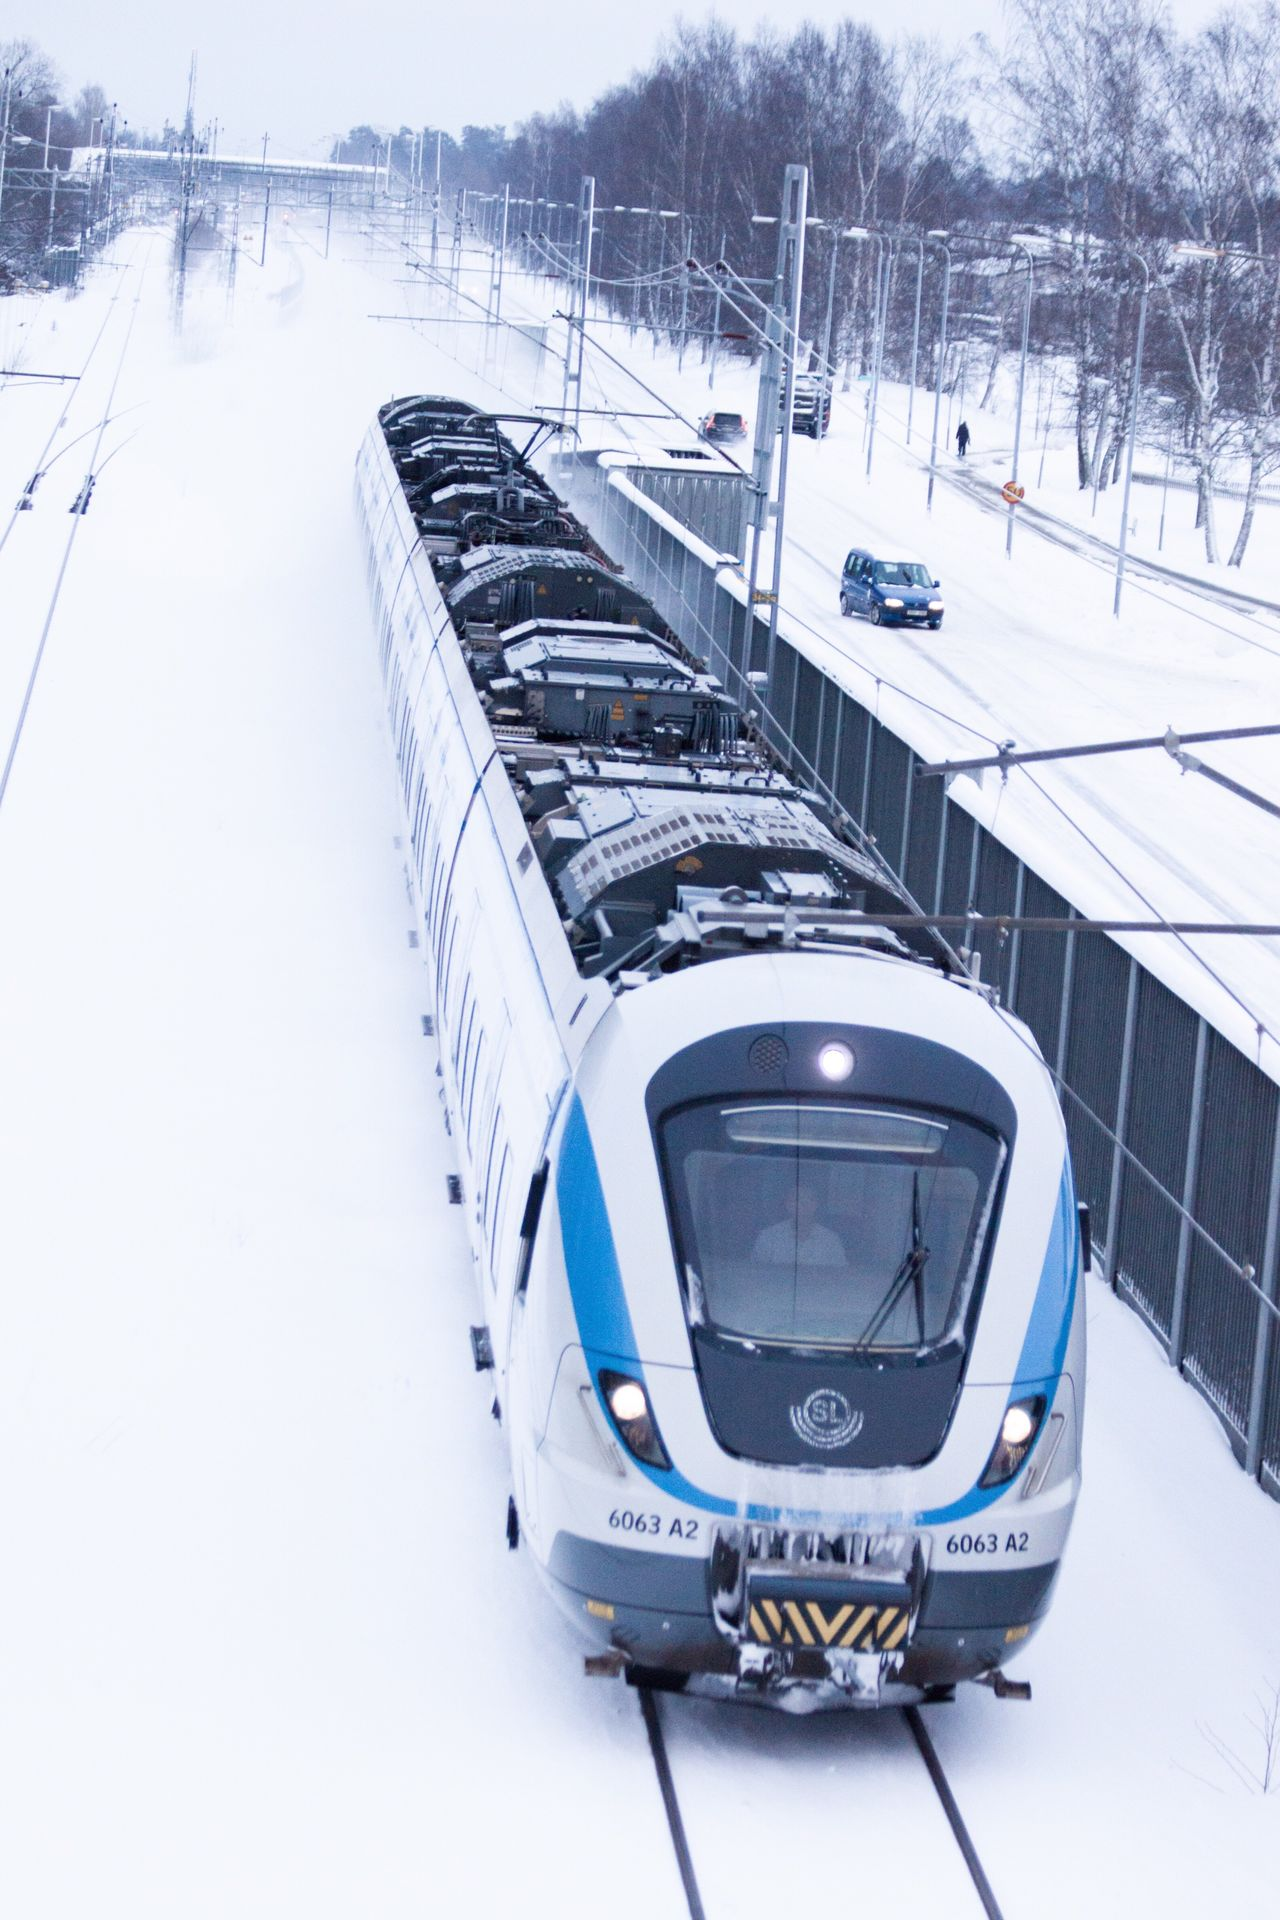 Commuter train in the winter picture 2 Transportation Commuter Train Snow Winter